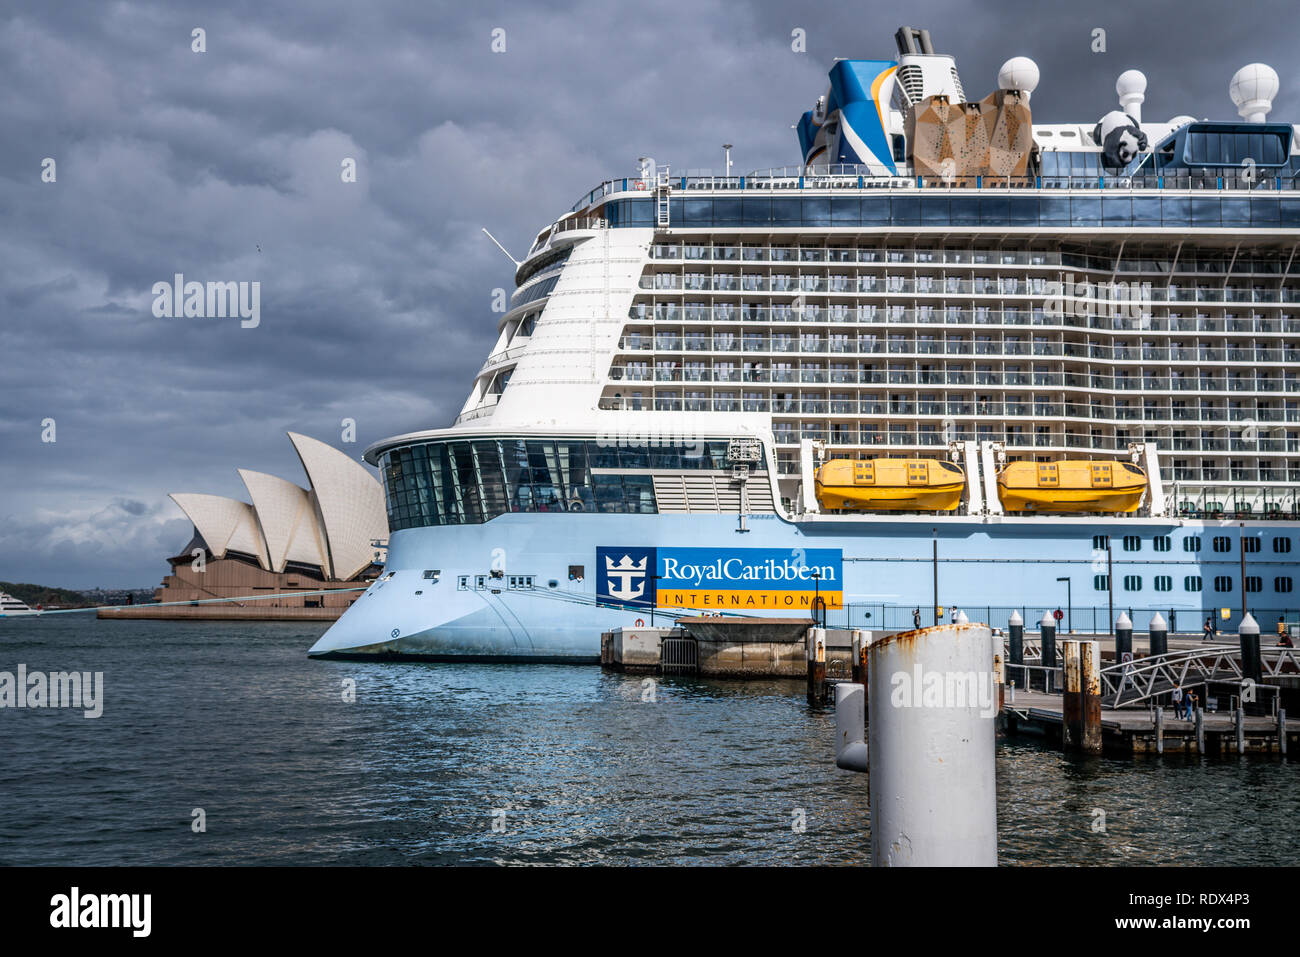 23th December 2018, Sydney NSW Australia: Rear of a Ovation of the seas Royal Caribbean International cruise ship with logo and Sydney Opera house in  - Stock Image